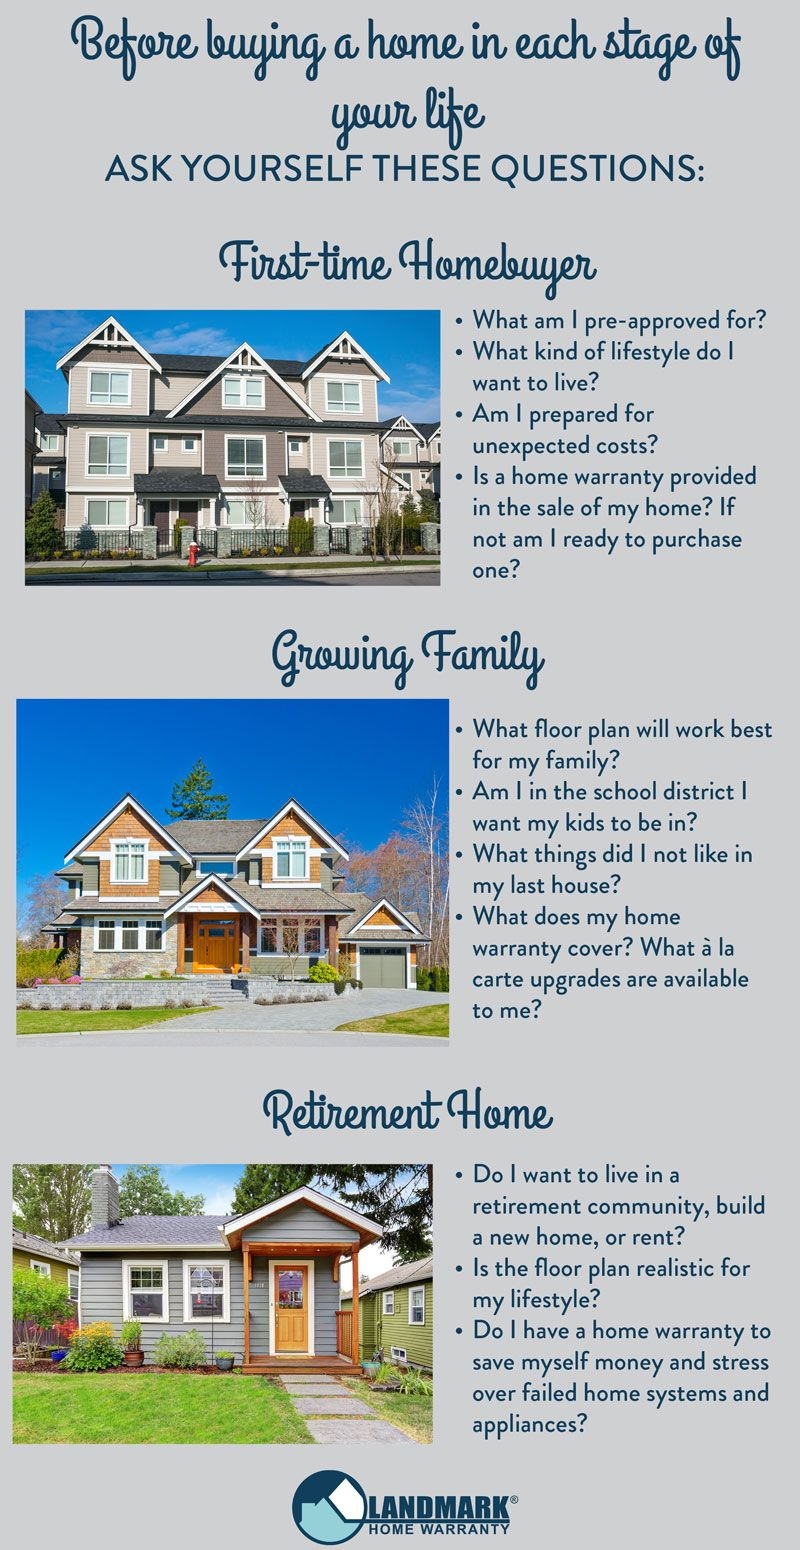 When looking to buy a new home for each stage of your life, ask ...